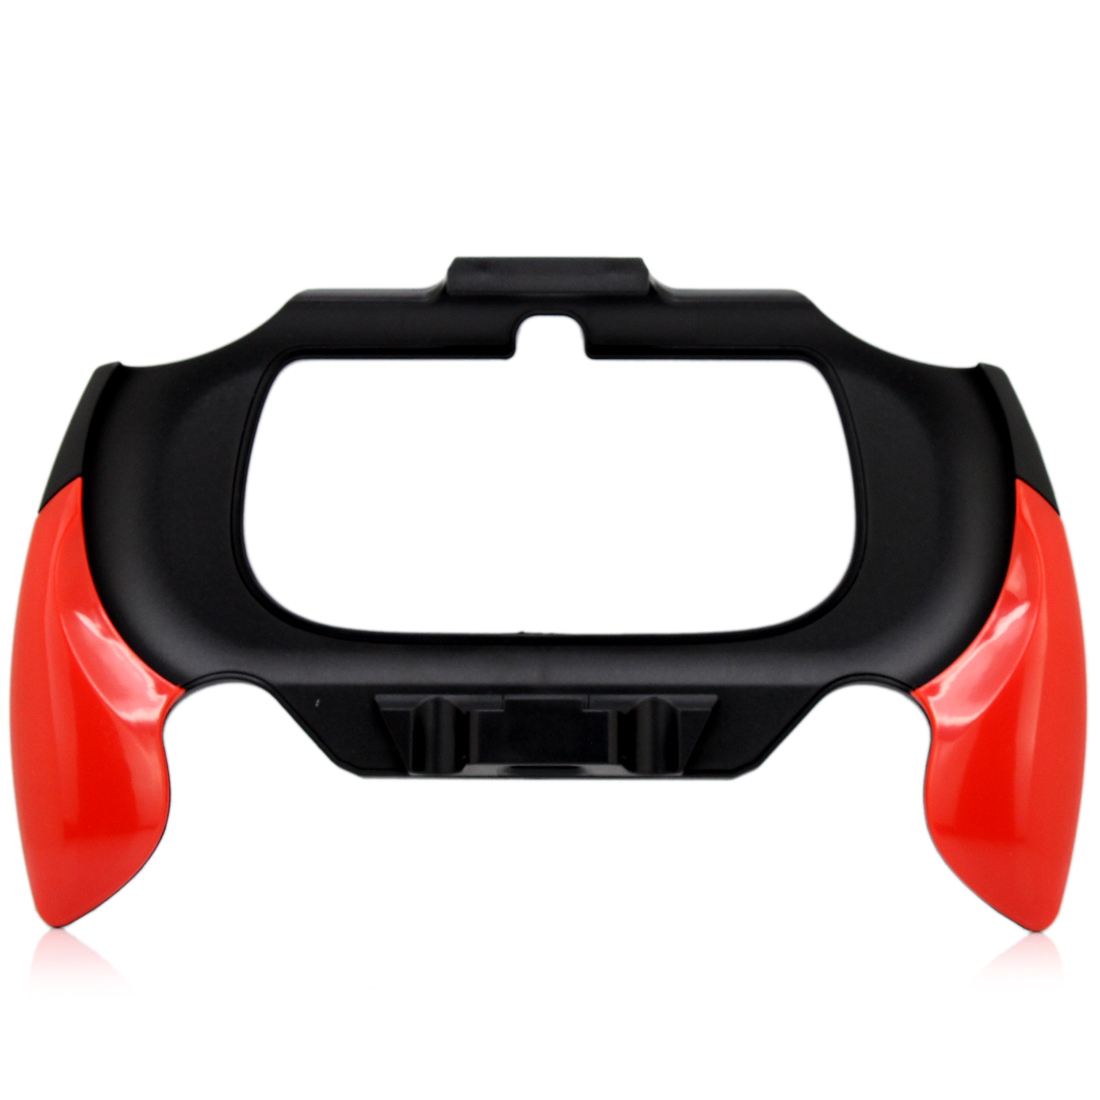 Handgrip Bracket Holder Flexible Hand Handle Grip for PS Vita PSV-2000 Game Red Black Contrast Color Stand